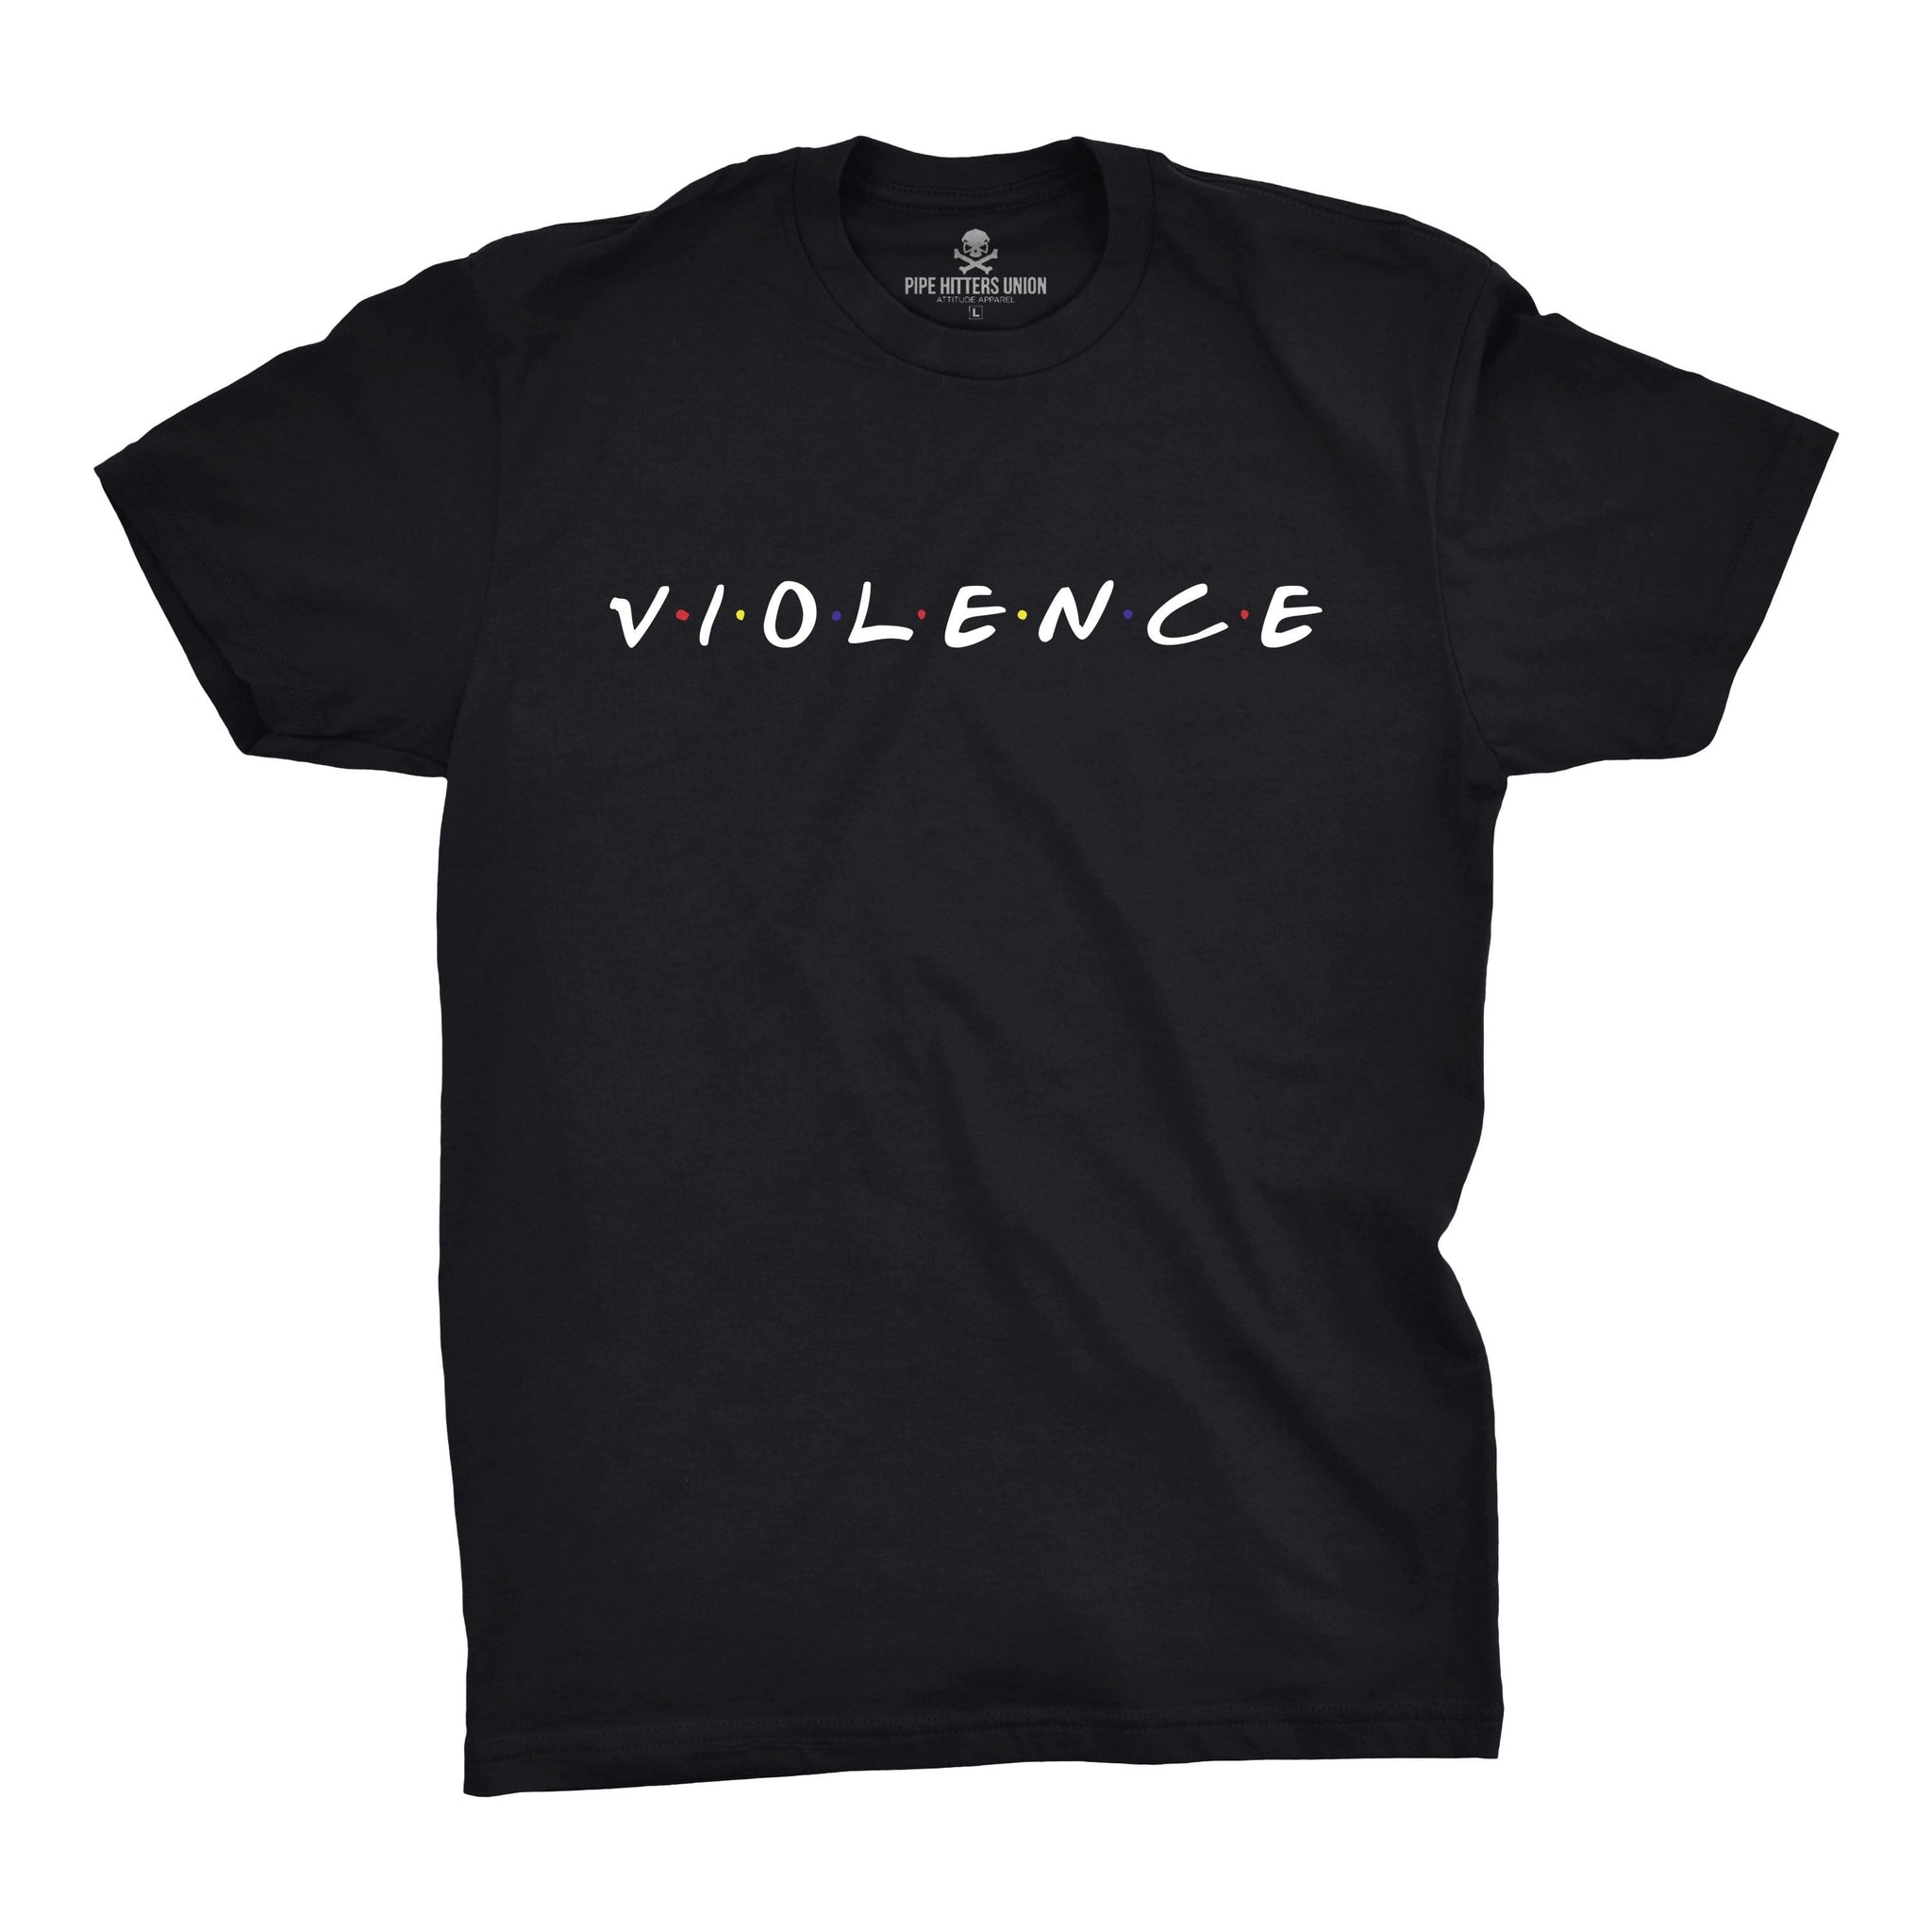 Friendly Violence - Overstock - Black - T-Shirts - Pipe Hitters Union